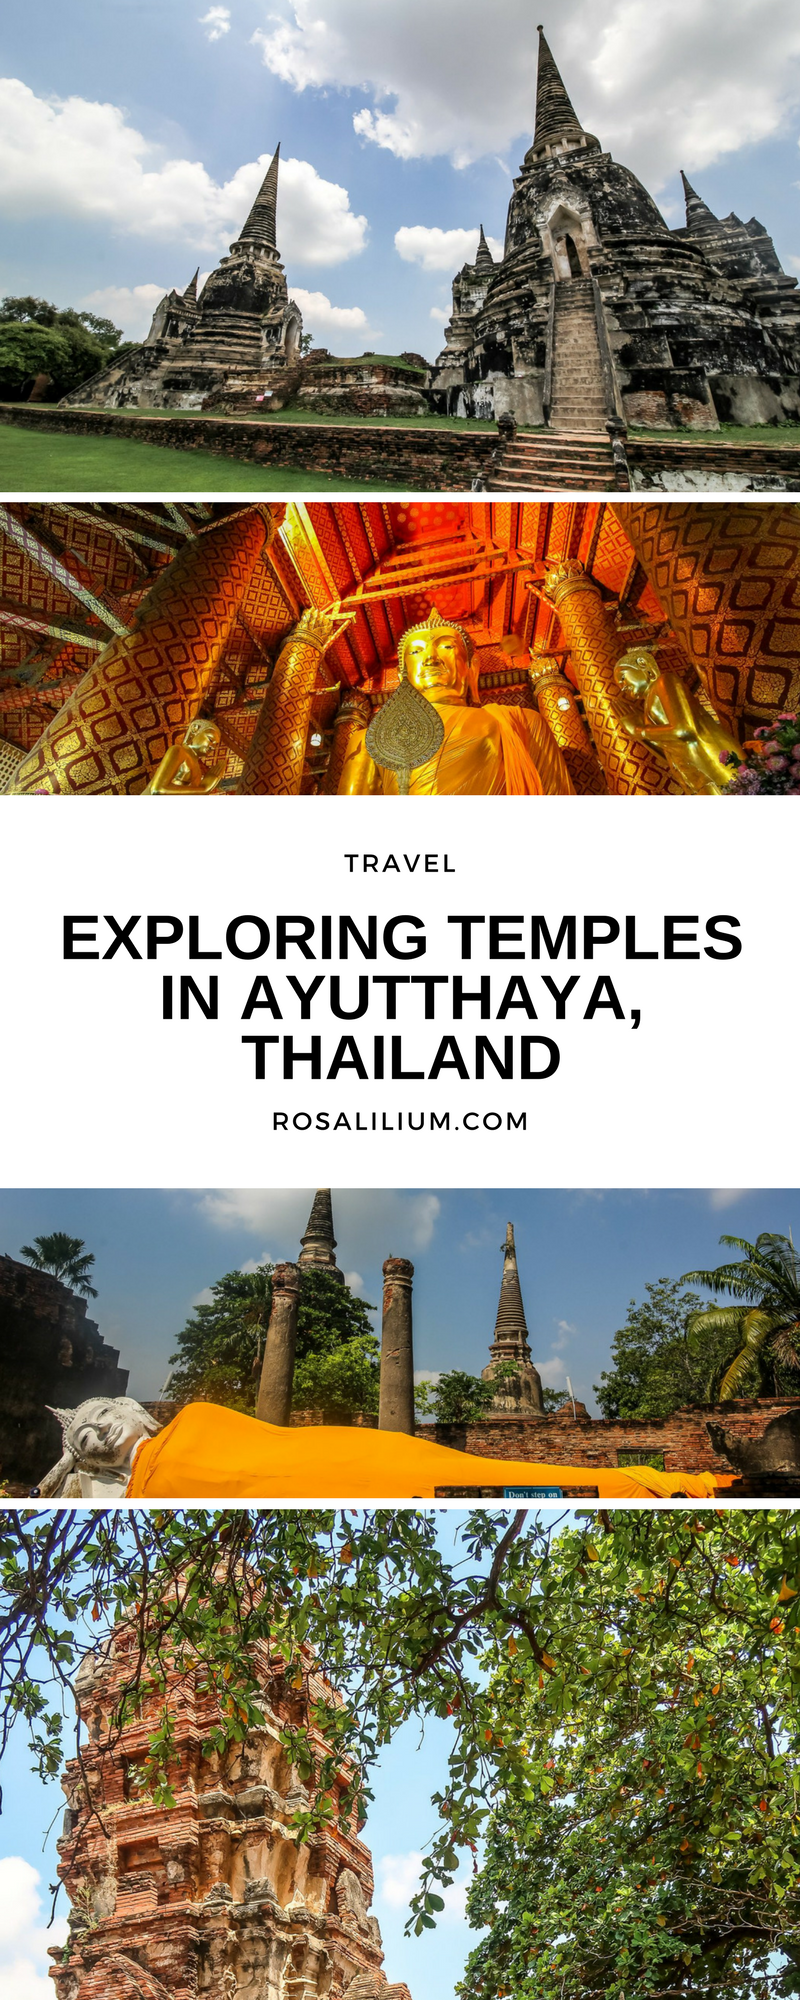 Exploring temples in Ayutthaya Thailand